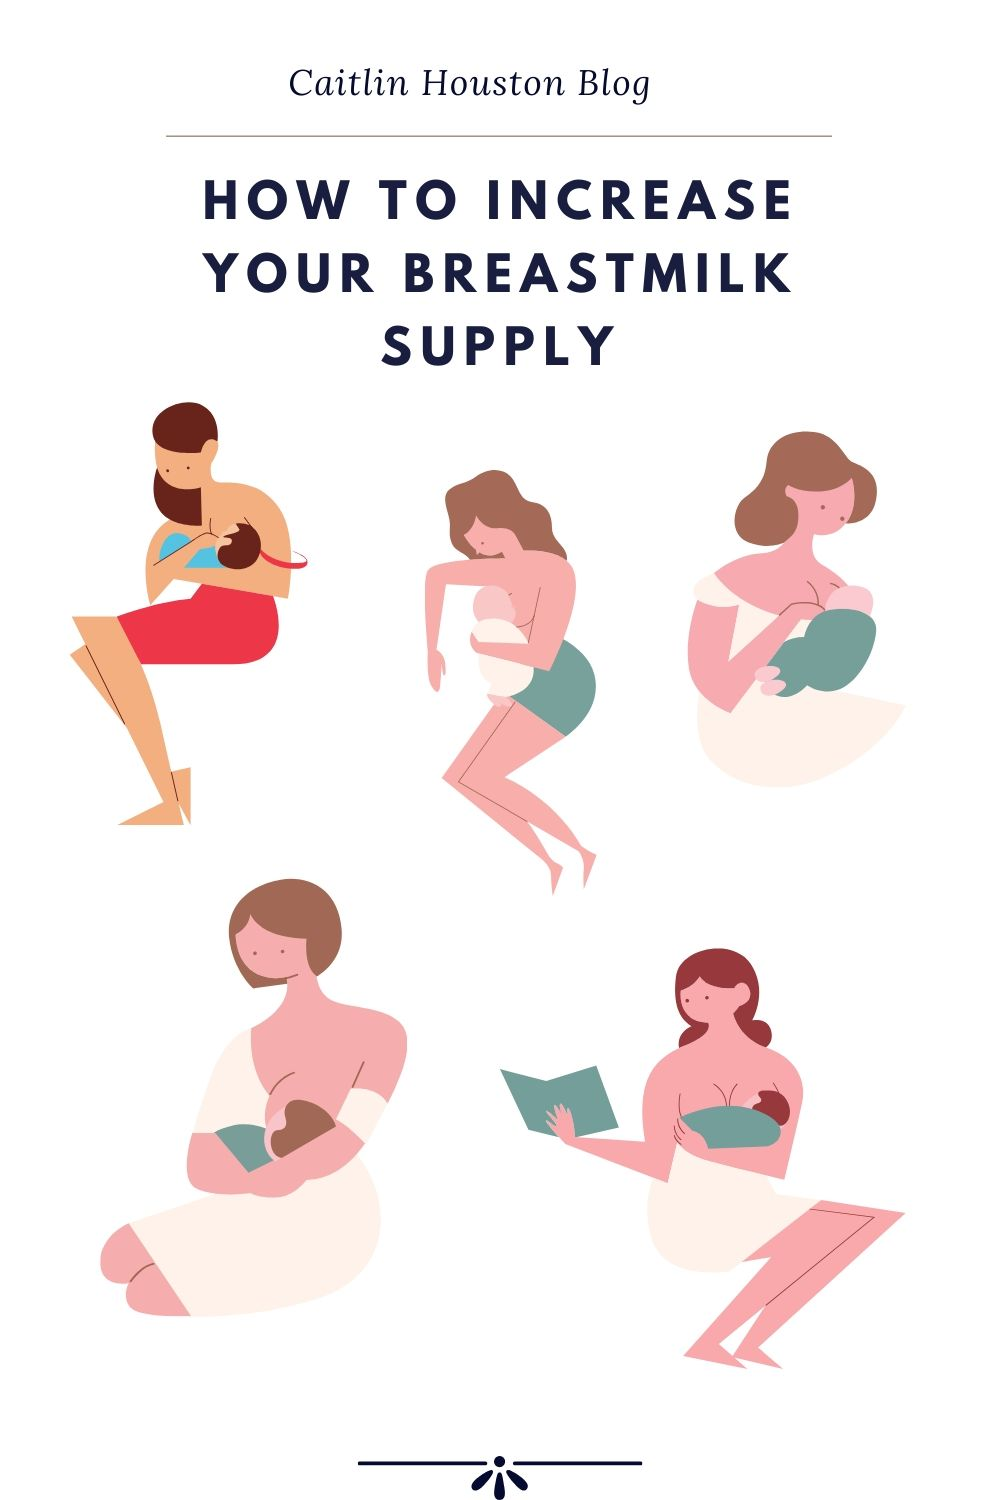 Ways to Increase your Breastmilk Supply